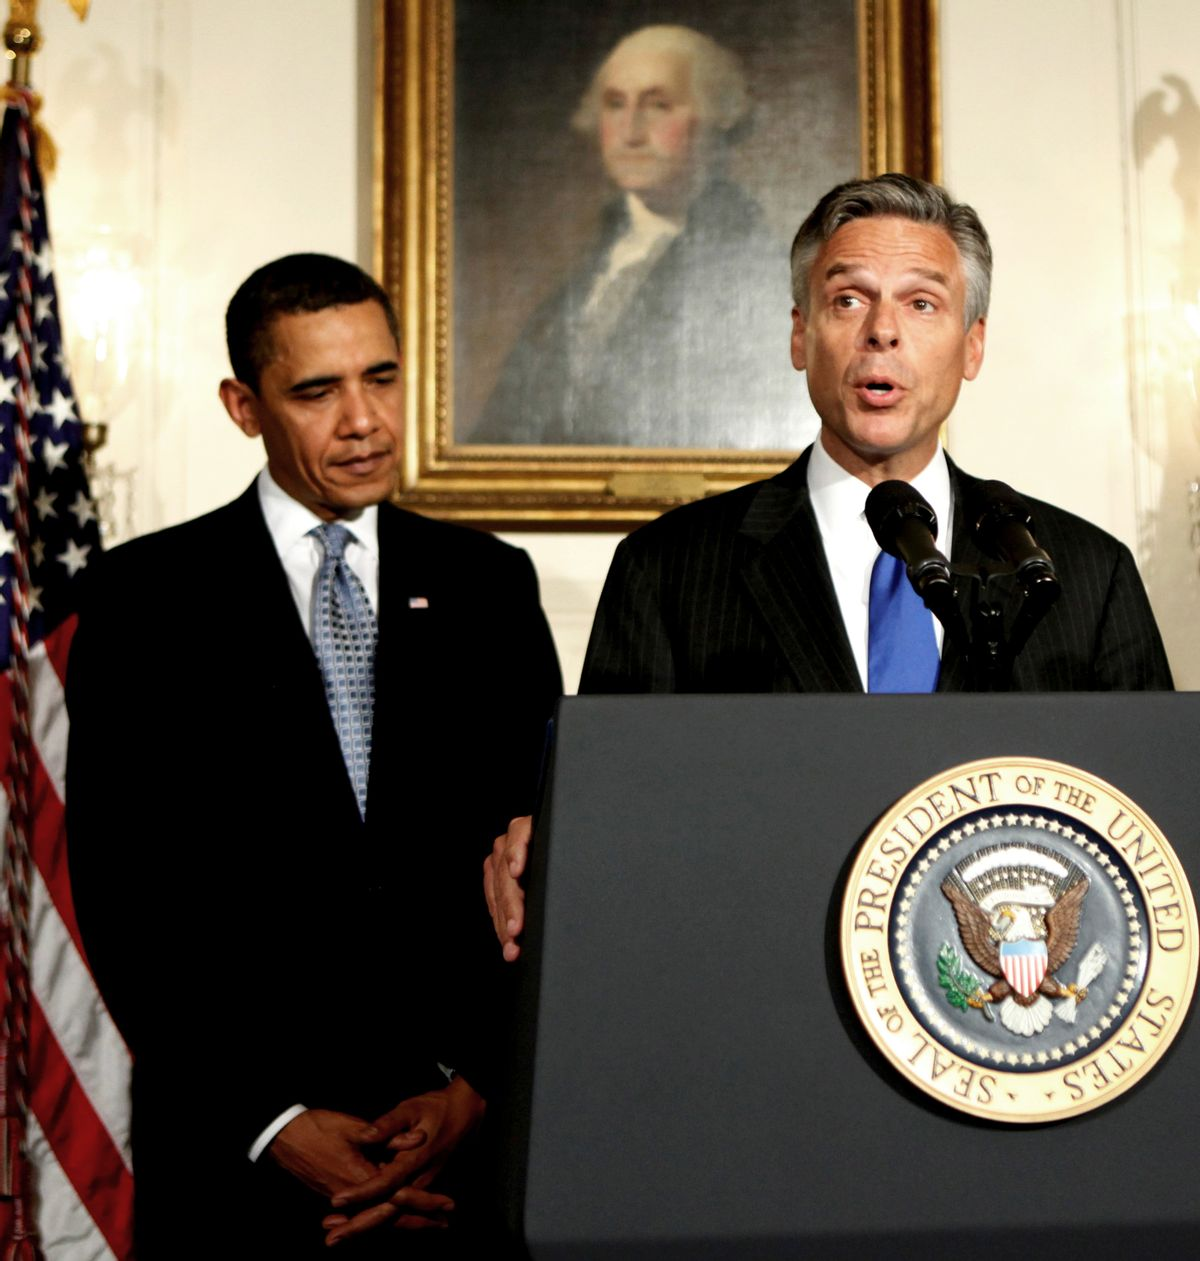 FILE - In this May 16, 2009 file photo, then-Utah Governor Jon Huntsman gives his acceptance remarks after his nomination by President Barack Obama as ambassador to China, in the Diplomatic Room at the White House in Washington. President Barack Obama pledged to bring change to Washington, but he is continuing one of the capital's most entrenched traditions: rewarding political supporters with ambassadorships. (AP Photo/Manuel Balce Ceneta, FILE) (Associated Press)